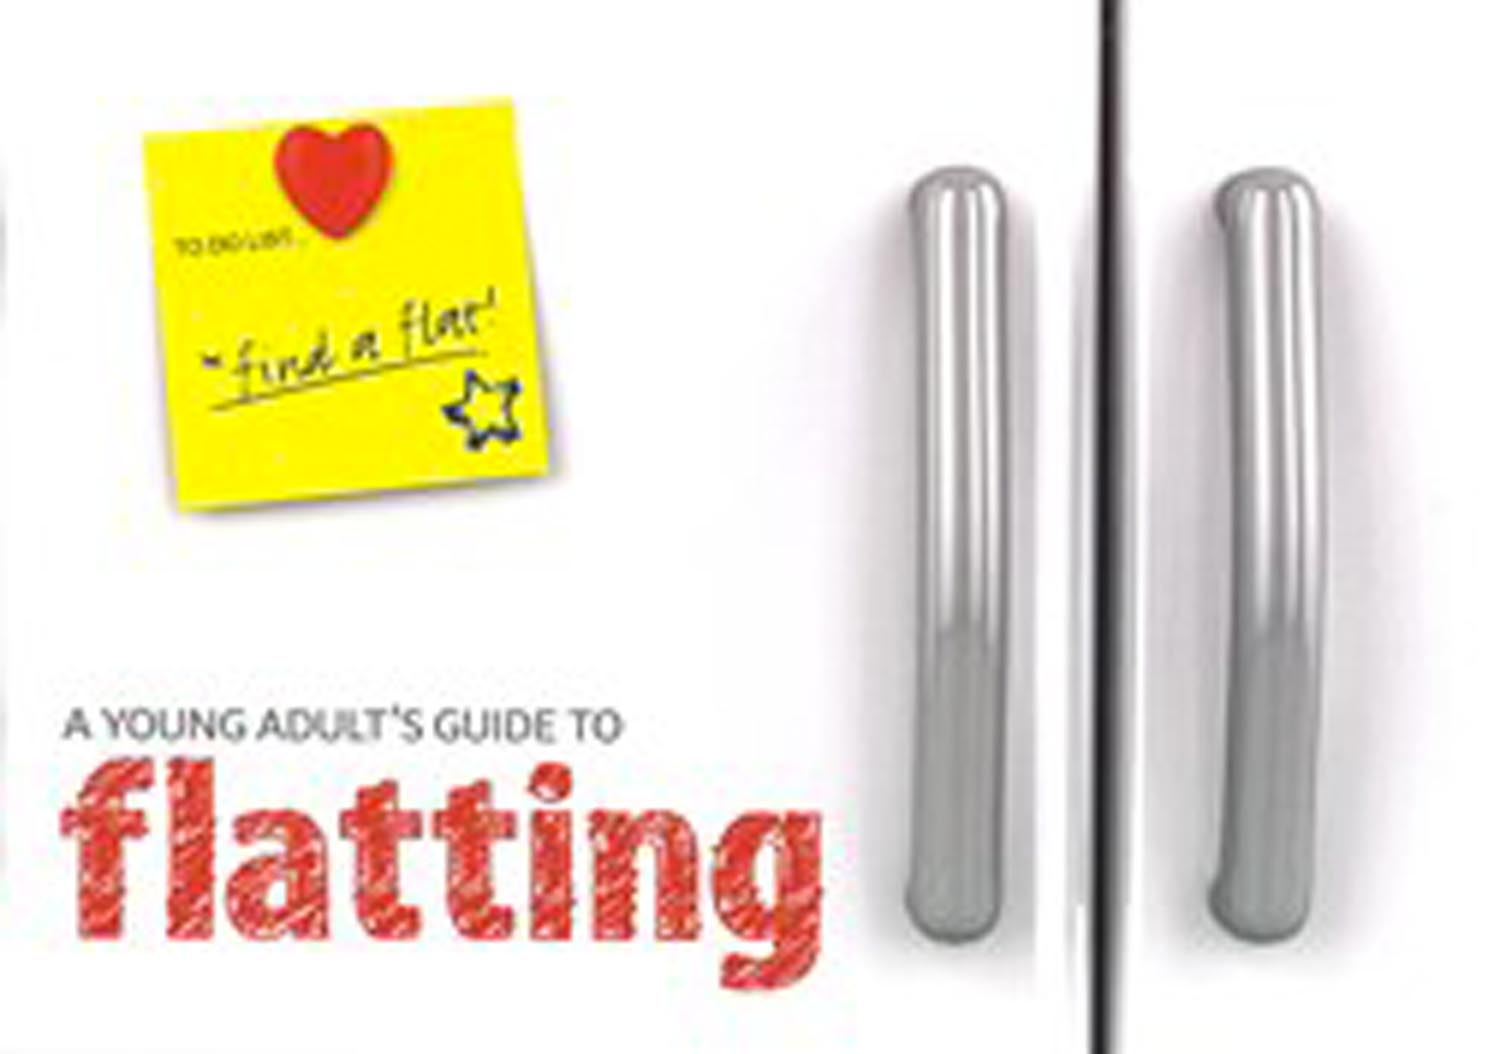 A Young Adult's Guide To Flatting